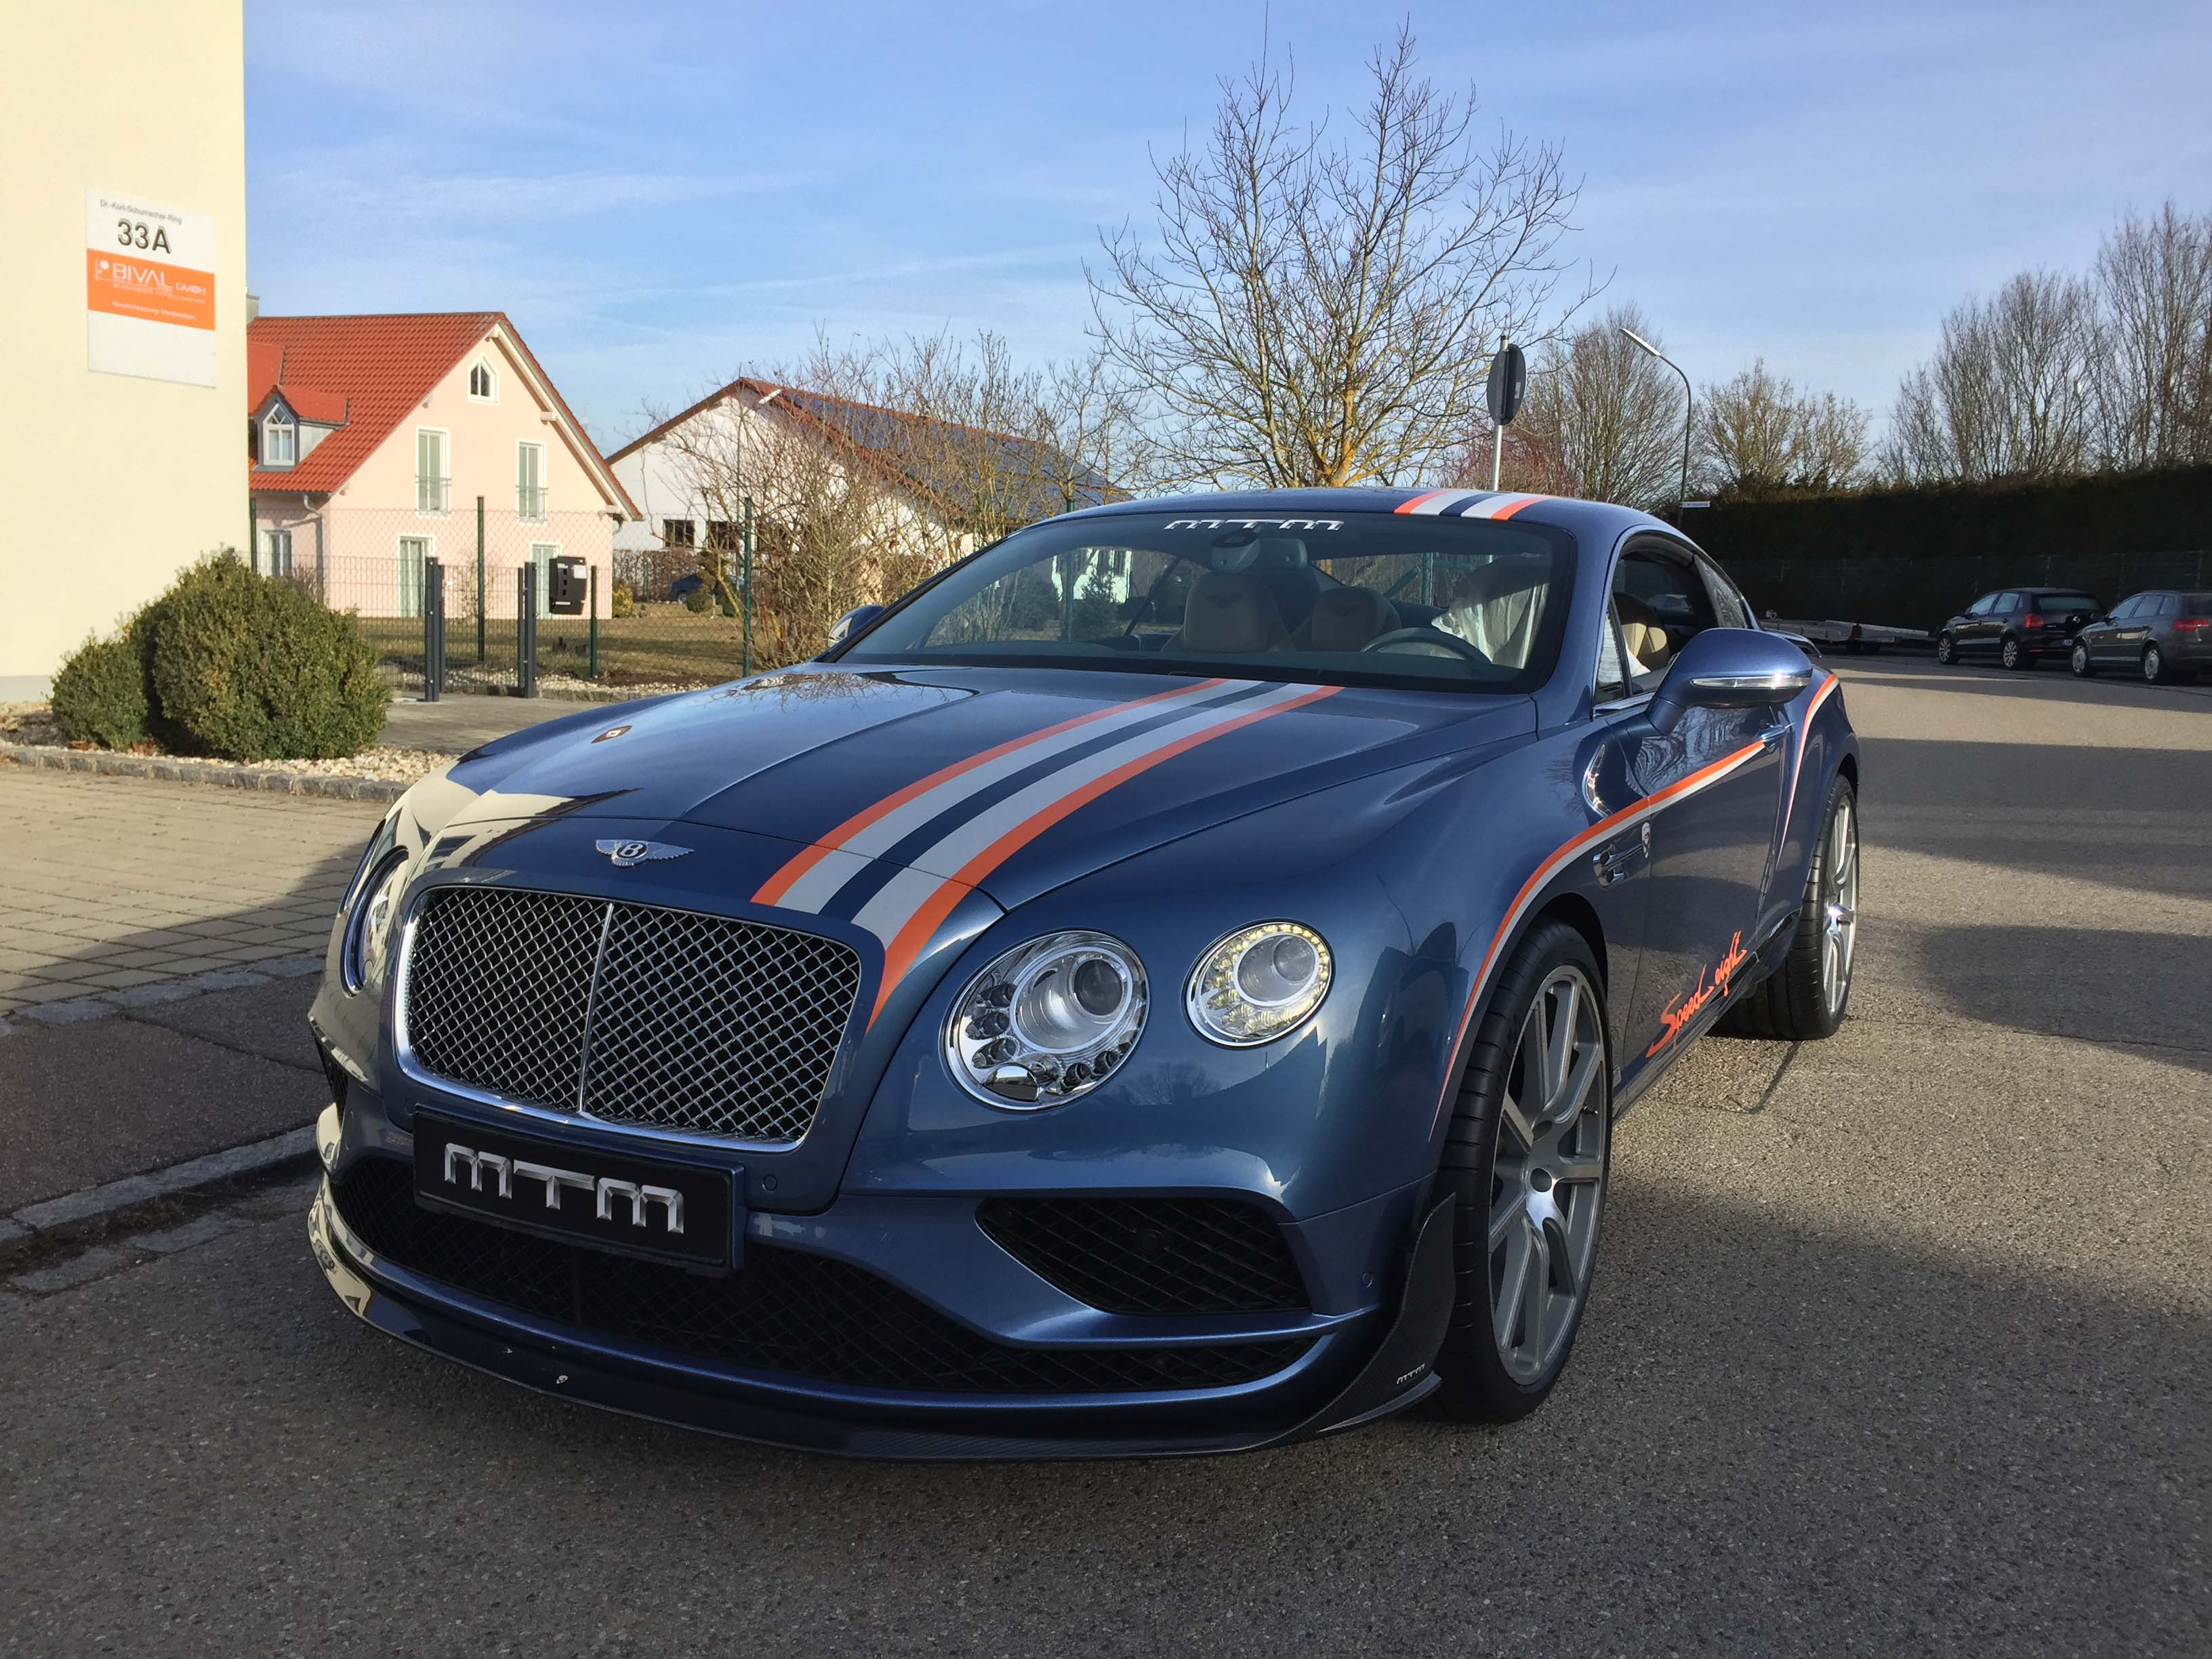 mtm-bentley-gt-birkin-edition-speed-eight-design-carwrap_5